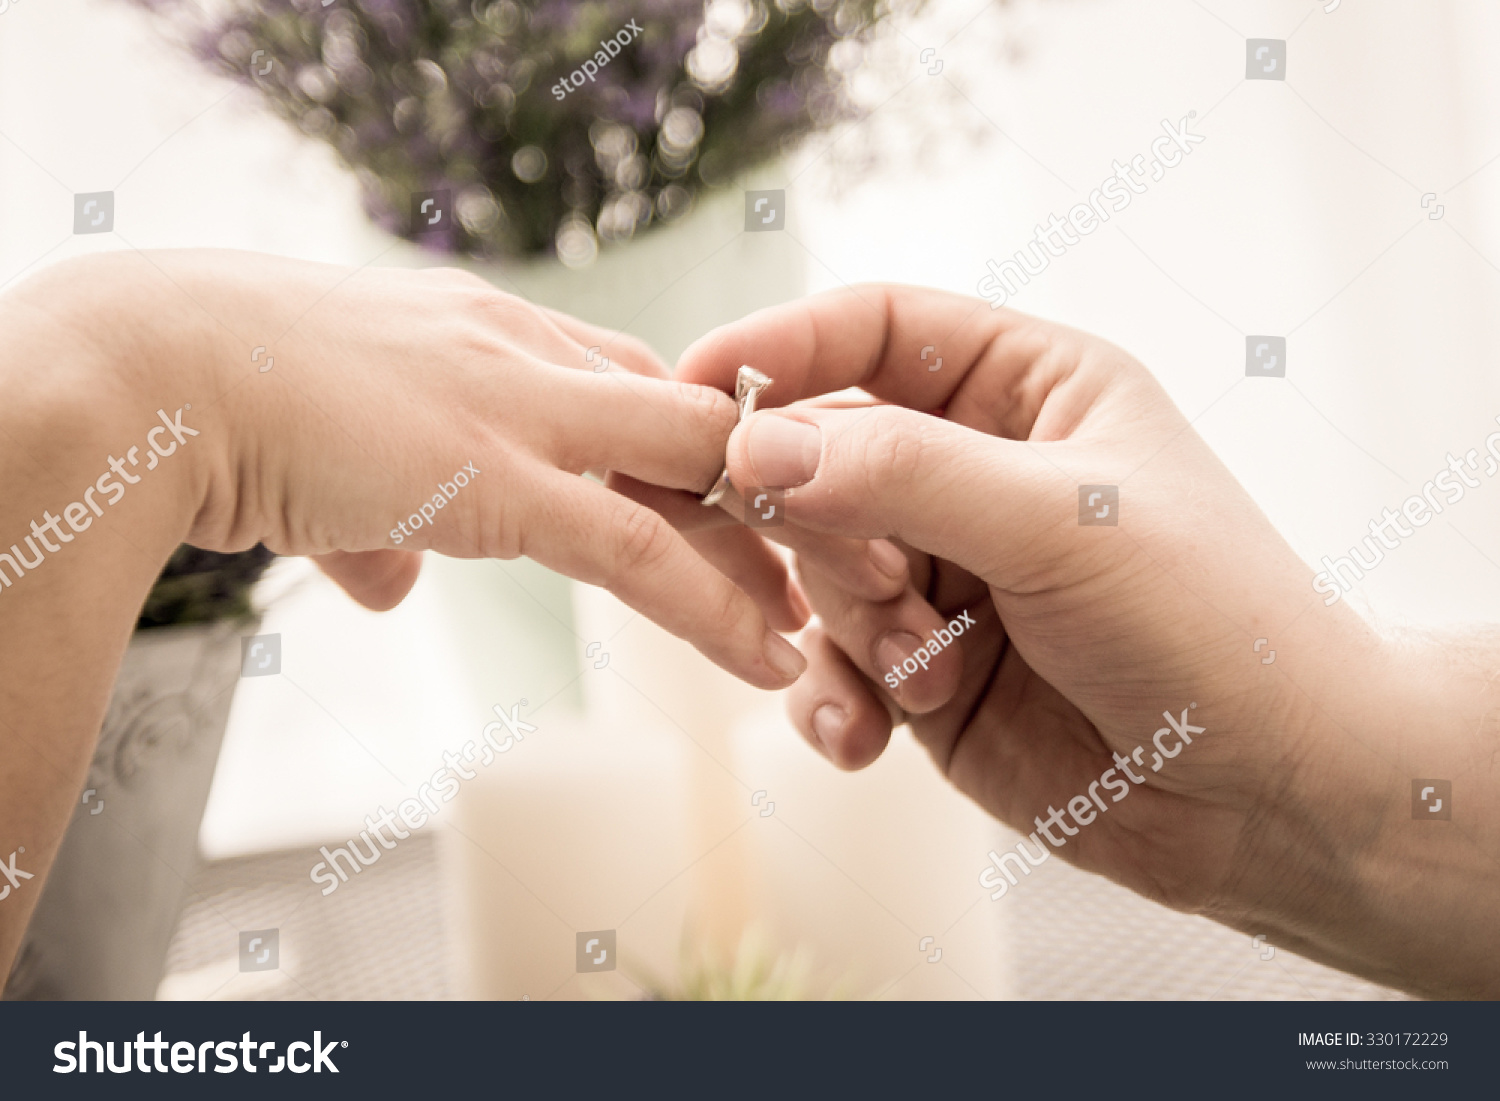 Men Wear Ring On Hand Girl Stock Photo 330172229 - Shutterstock